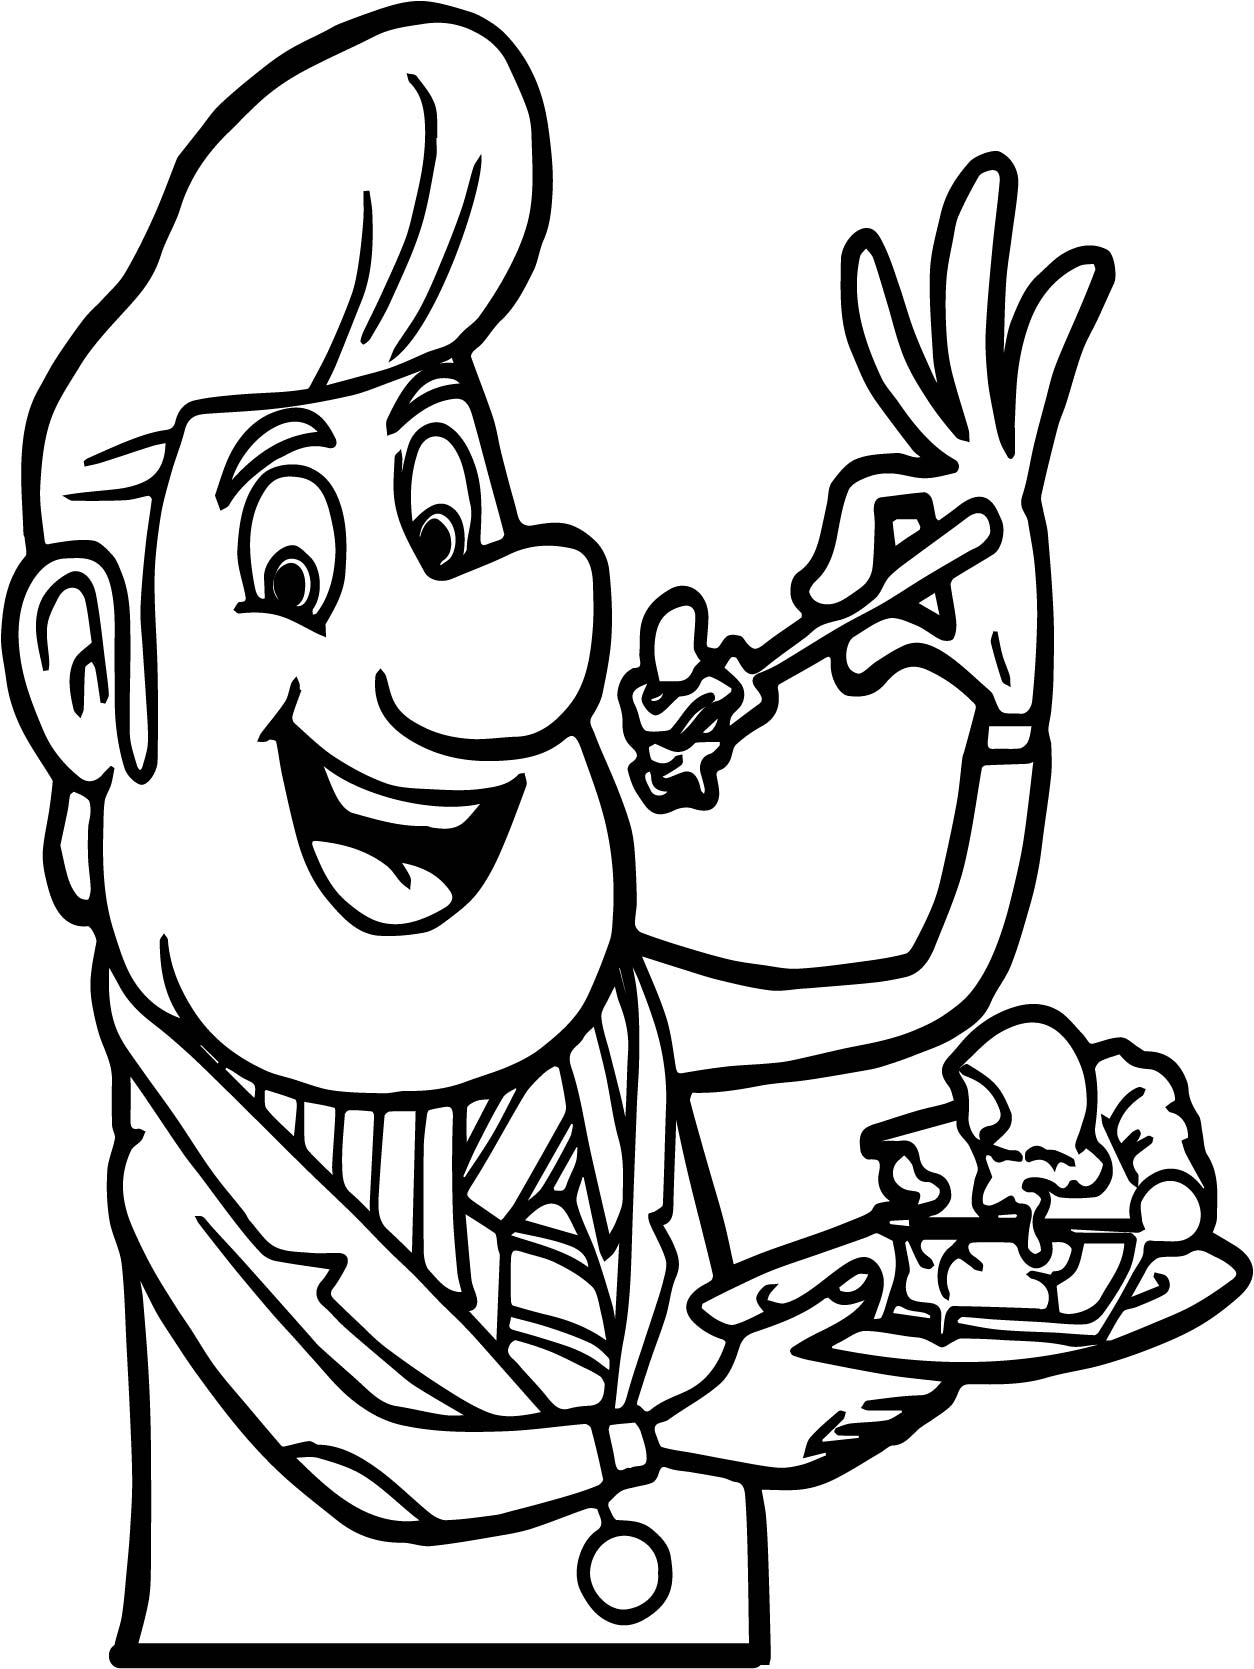 cloudy with a chance of meatballs 2 coloring pages - cloudy with a chance of meatballs great meal coloring page